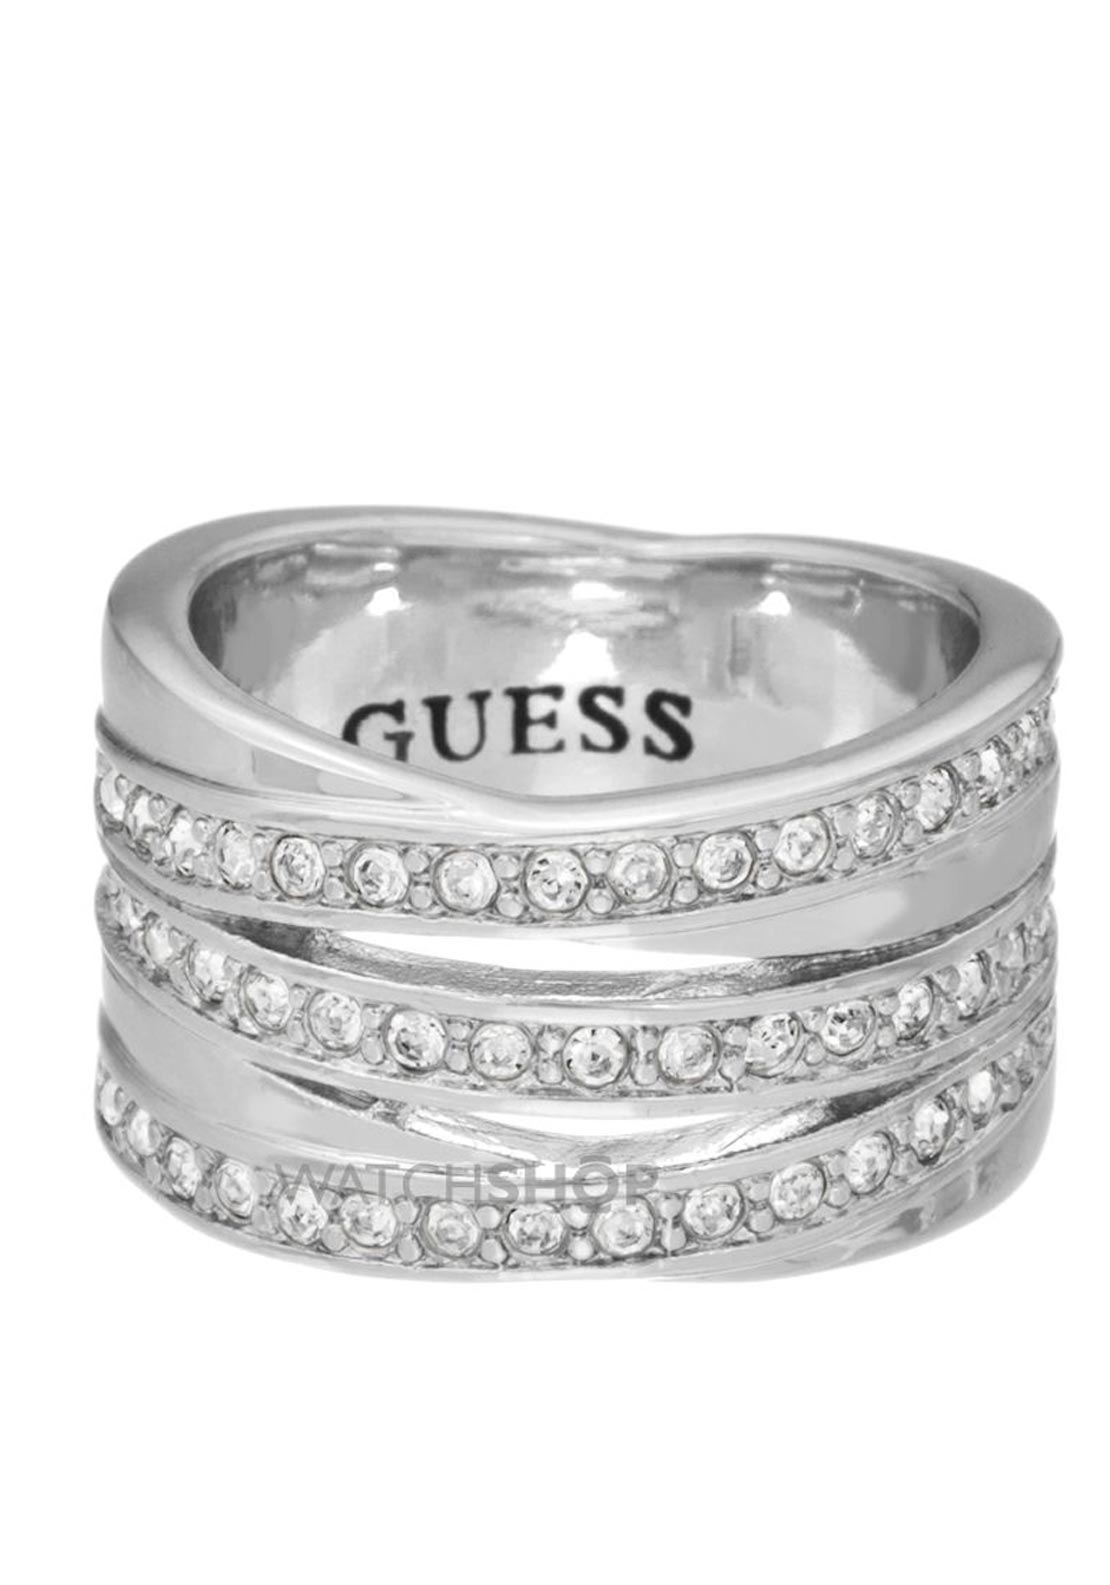 Guess Womens Stainless Steel Crystal Stack Ring